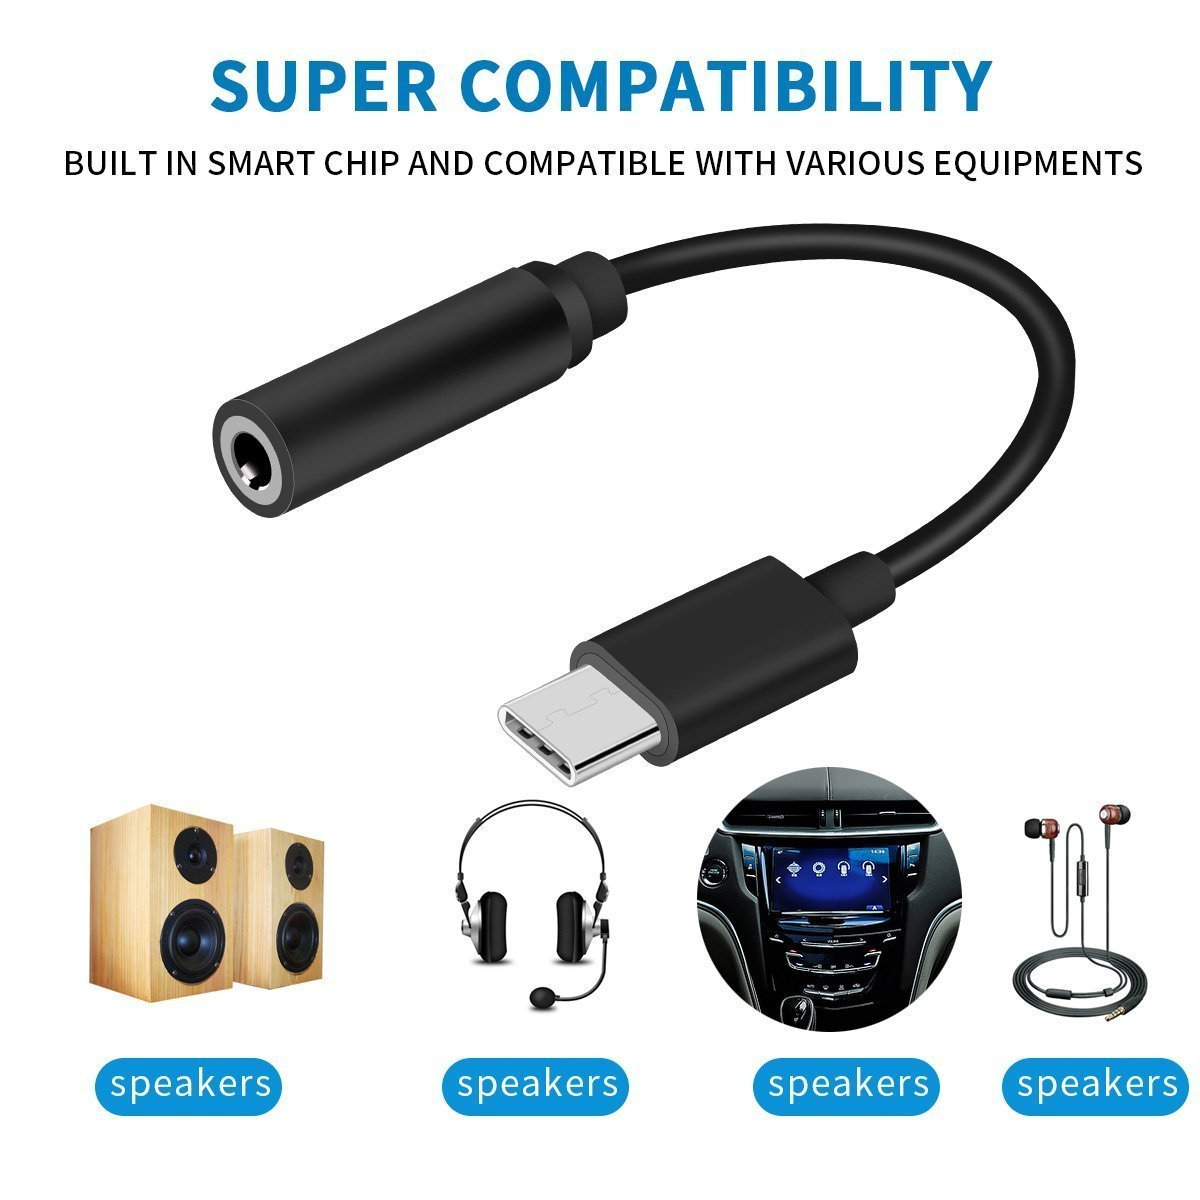 Sonido Transparente USB C a Adaptador de Audio de 3,5 mm para Huawei Mate 20//Mate 20 Pro etc Adaptador de Audio SOCINY Cuffie da 2 in 1 Tipo C a 3,5 mm